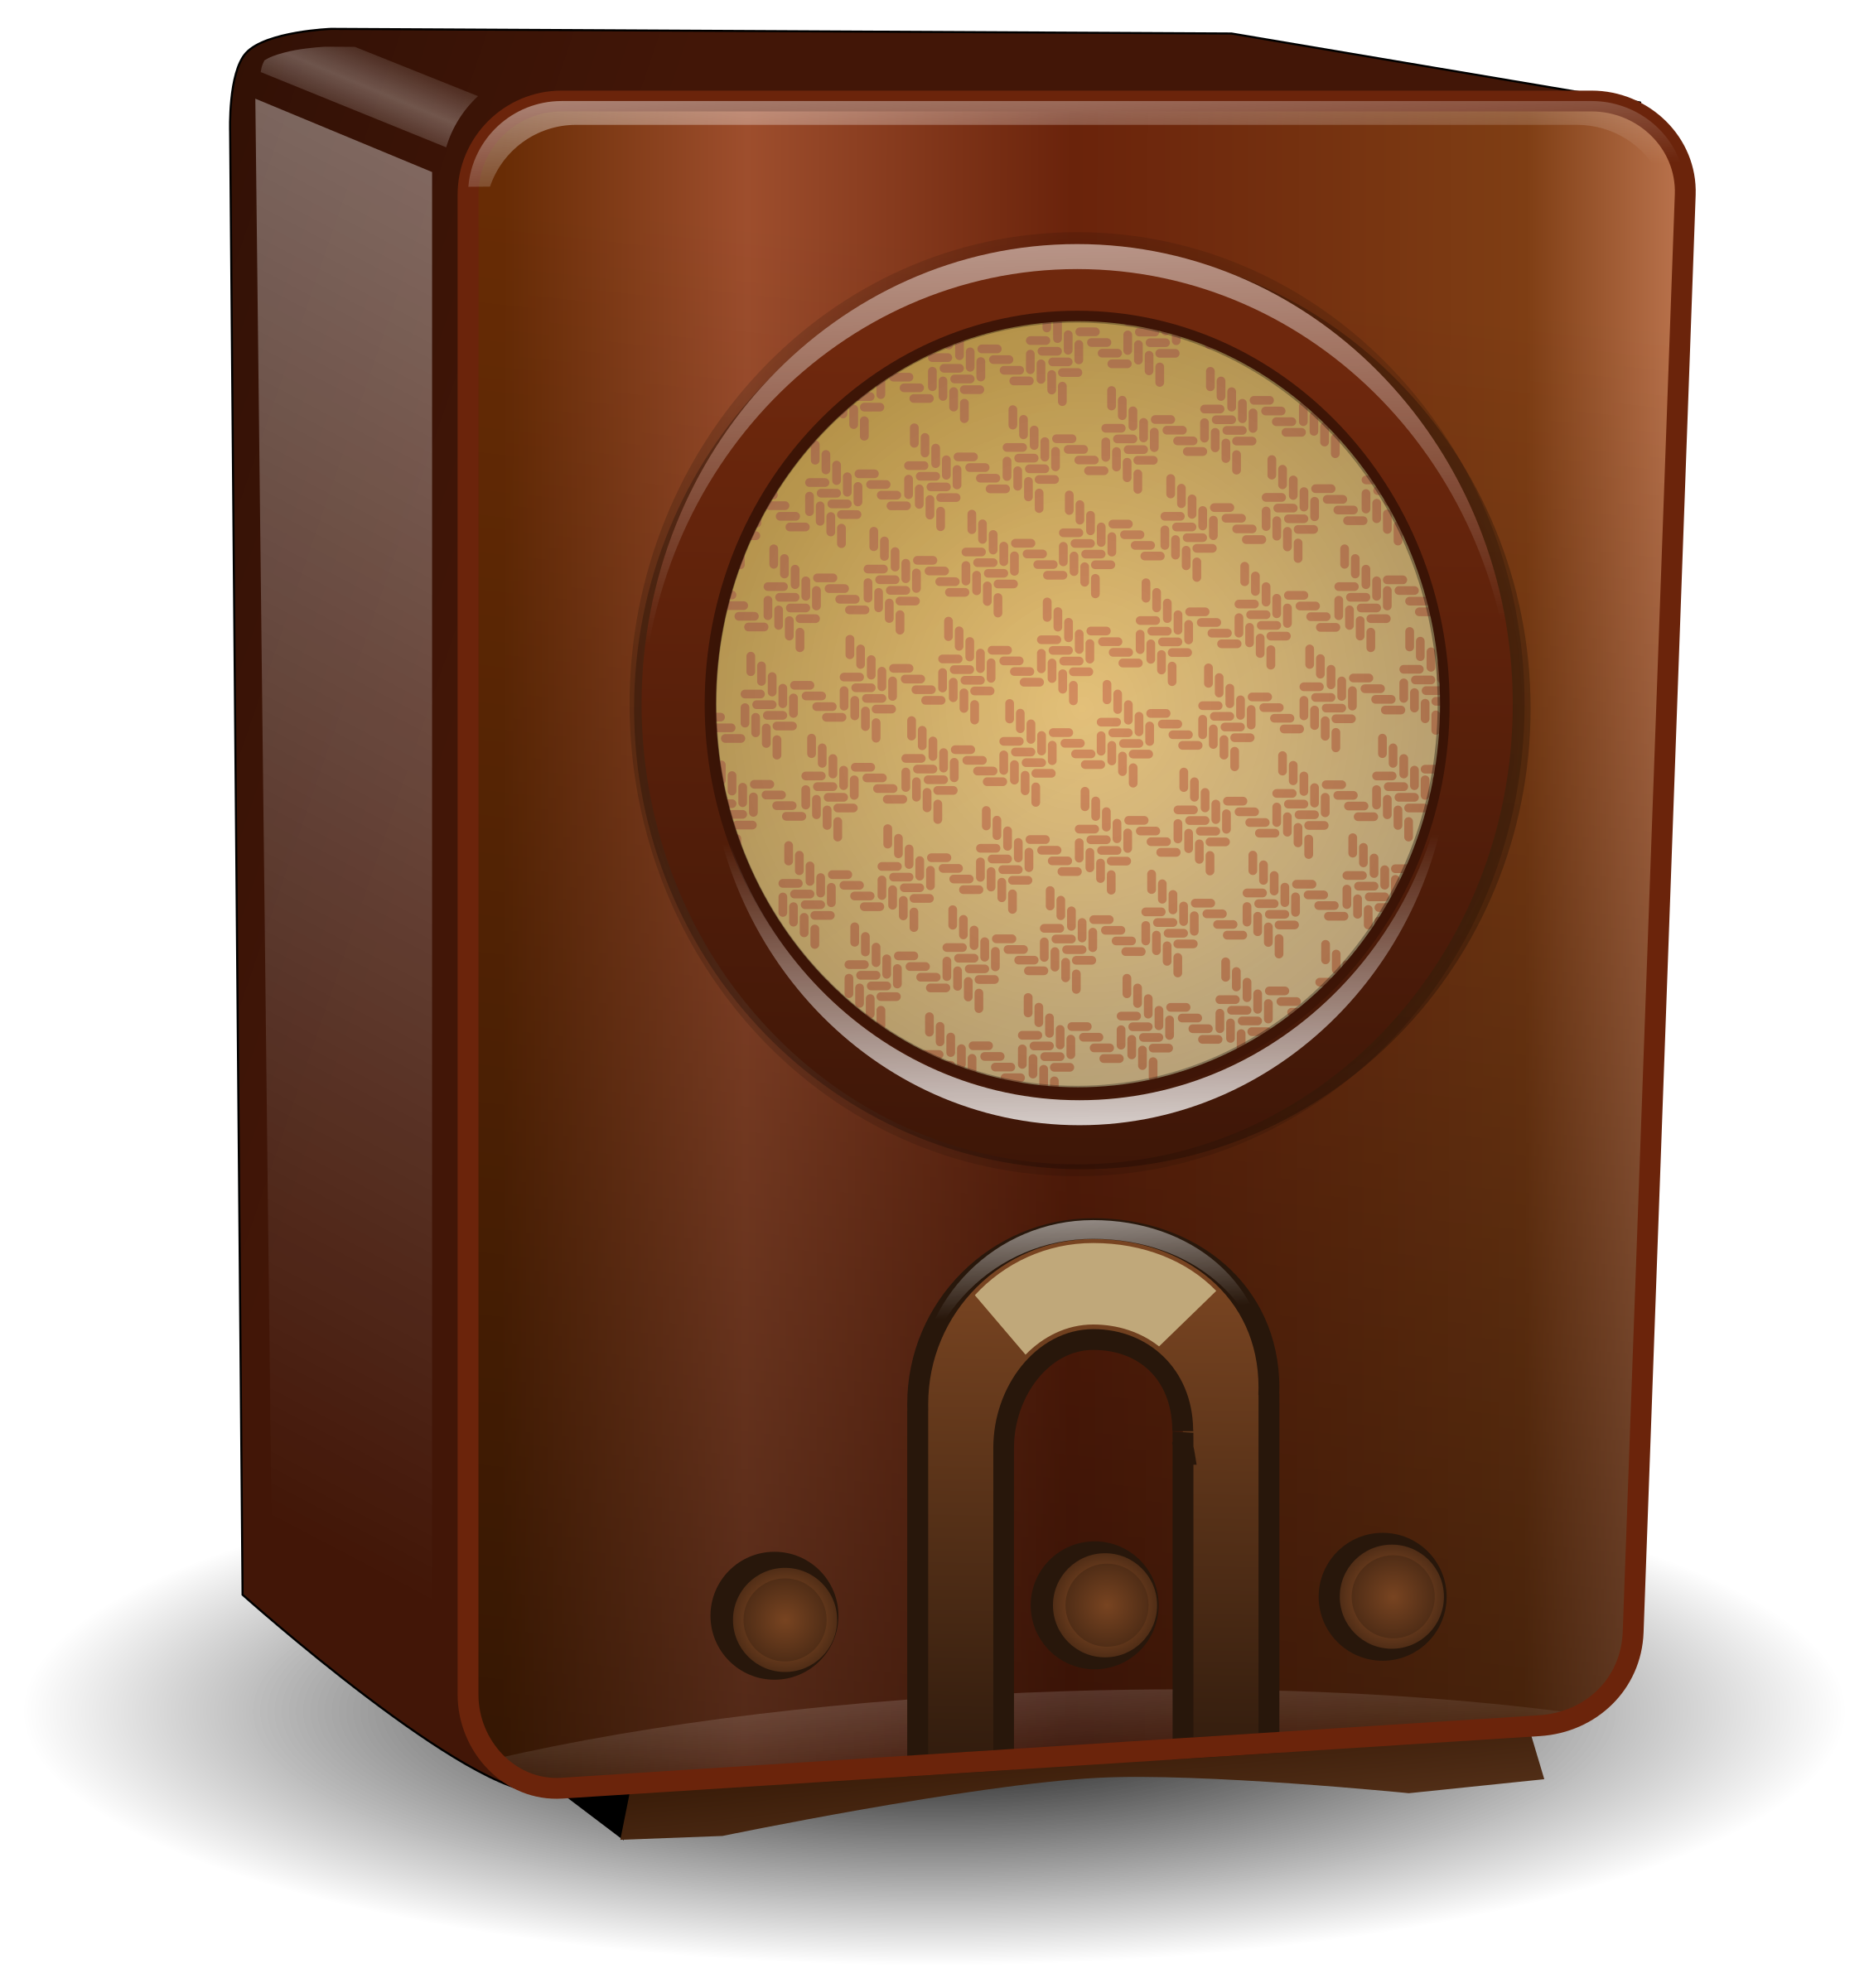 banner stock 50s clipart radio. Transparent background free on